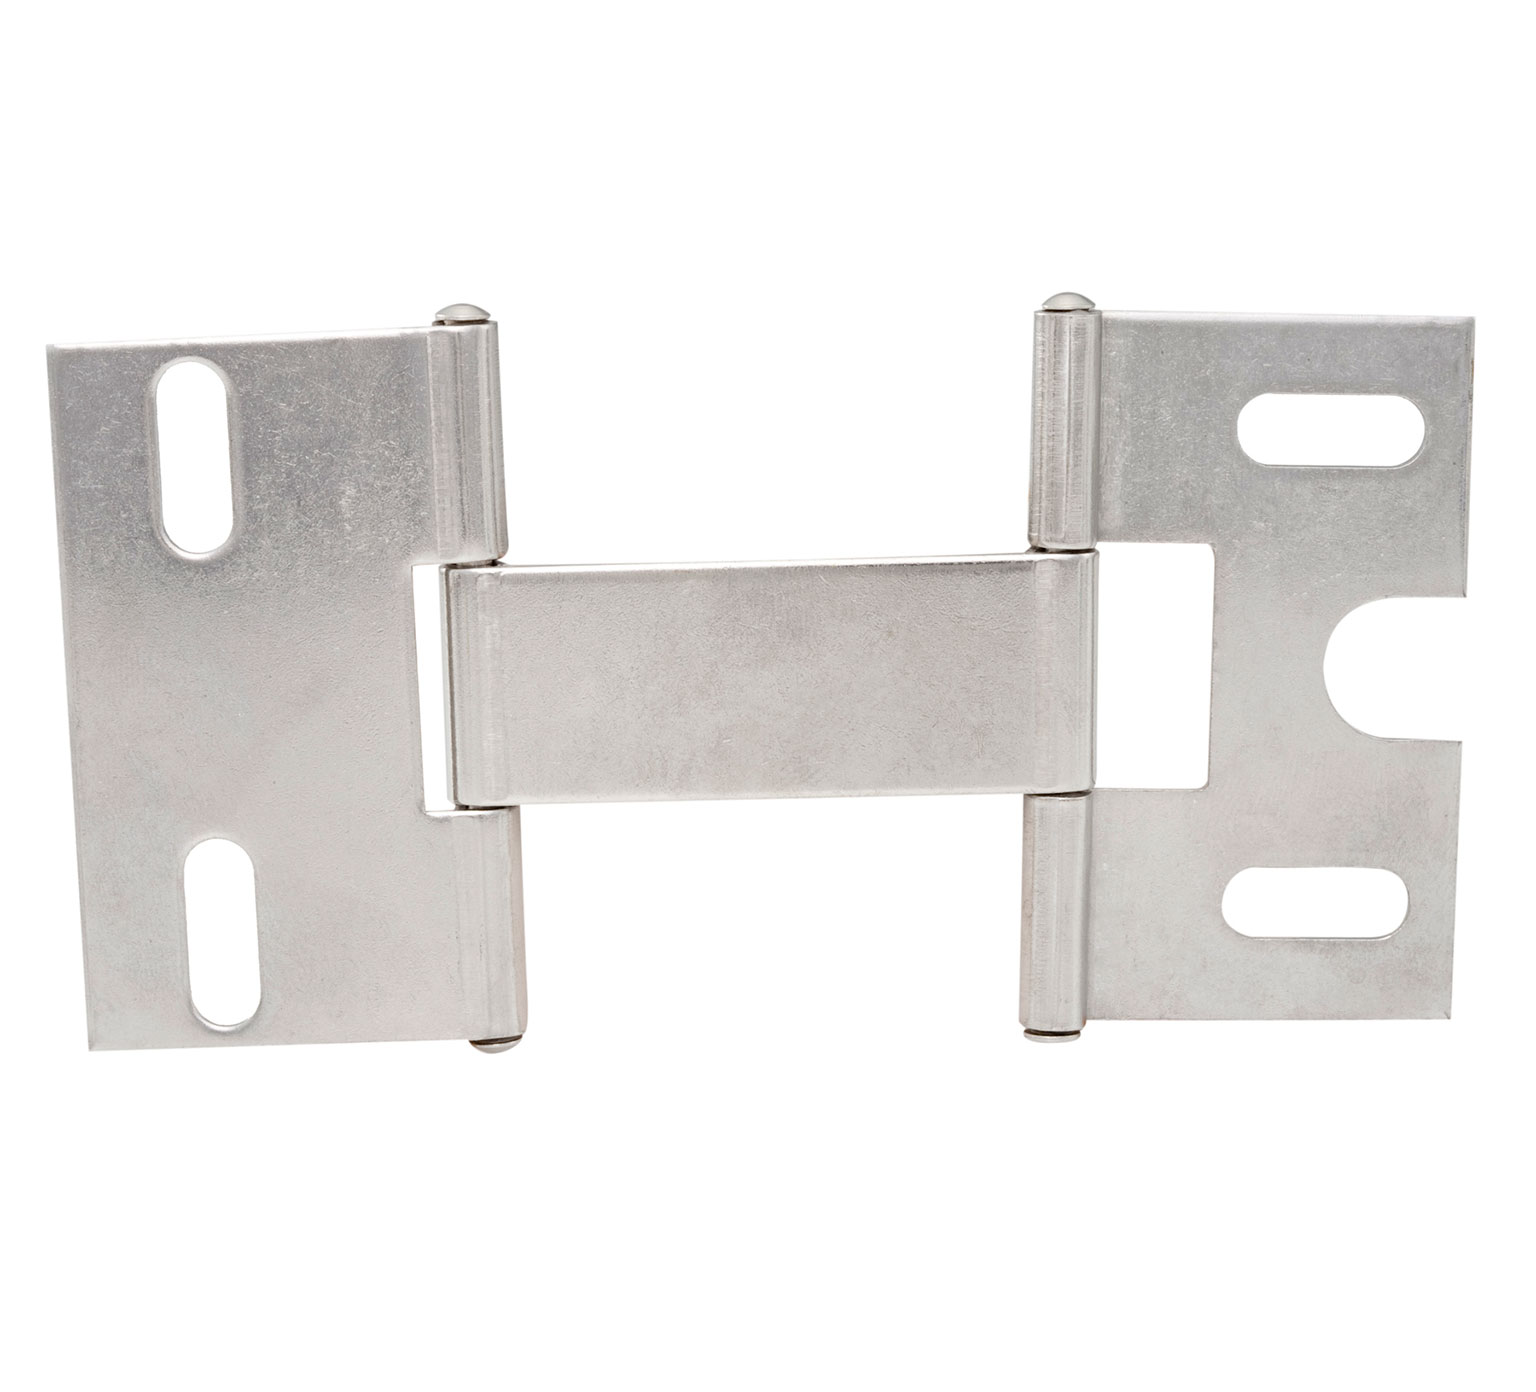 1021246 Stainless Steel Hinge - 5.67 x 2.953 x 0.315 in alt 1